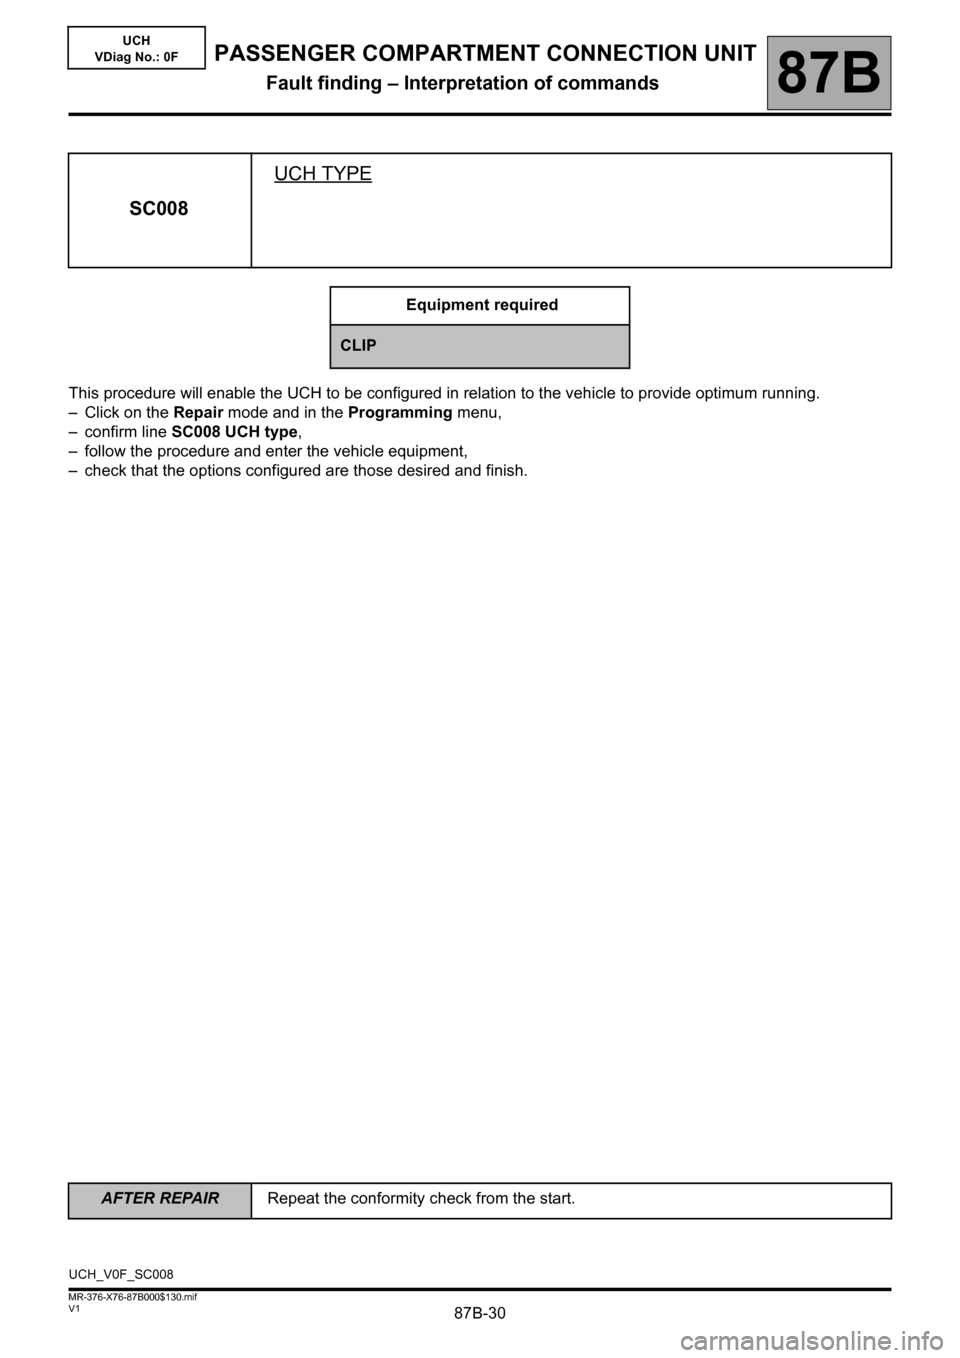 RENAULT KANGOO 2013 X61 / 2.G Passenger Comparment Connection Unit Workshop Manual, Page 30